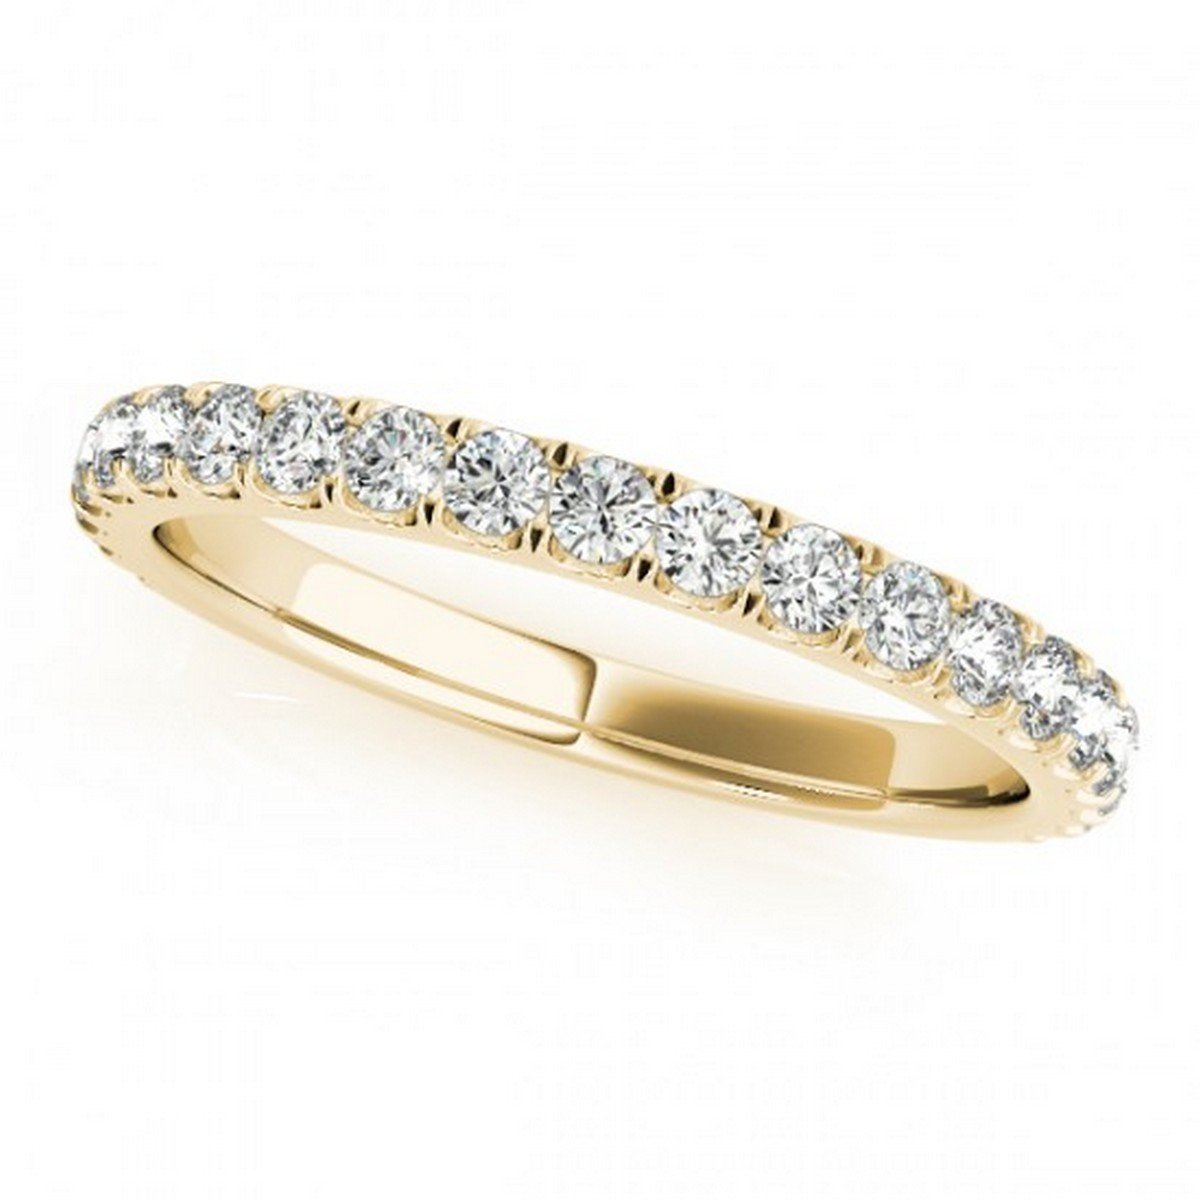 Elegant French Pave Set Diamond Wedding Ring Semi Eternity Style in 18k Yellow Gold with 0.45 carats